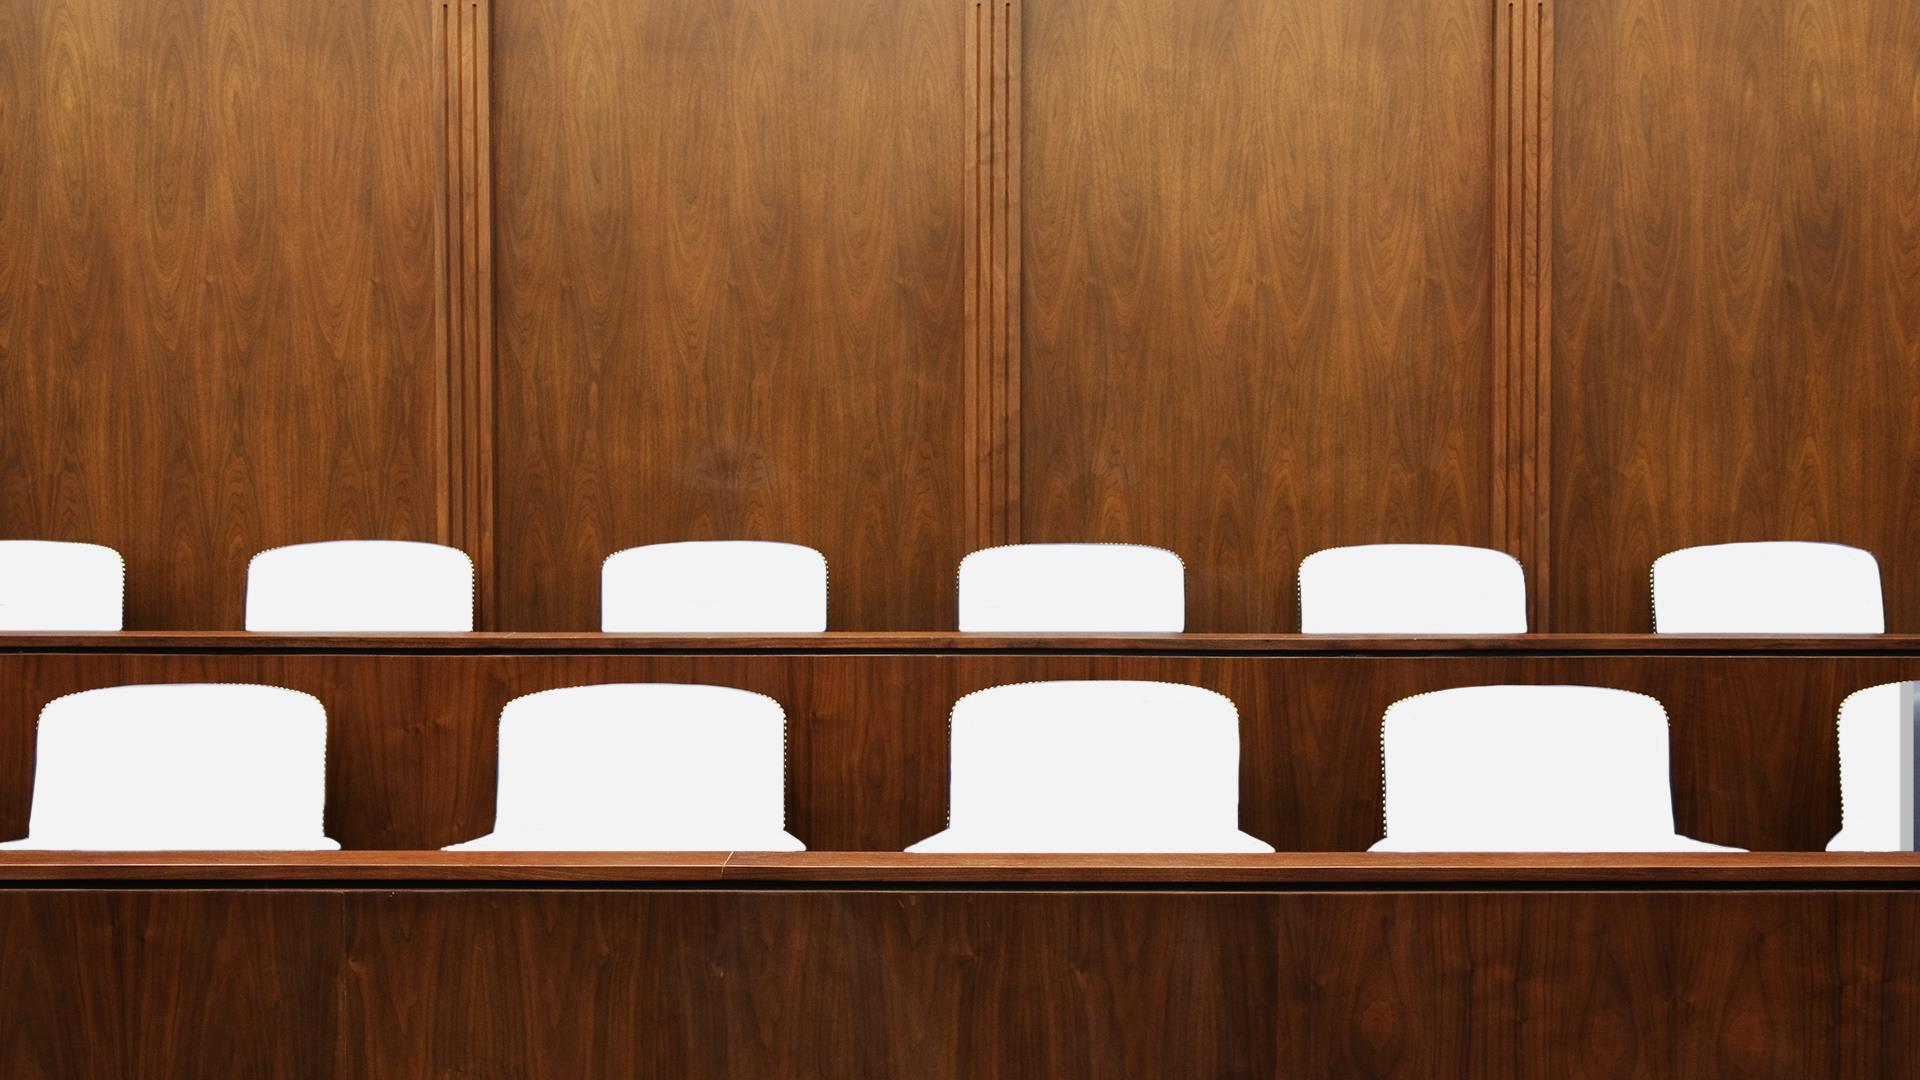 How our criminal justice system is almost entirely negotiated behind closed doors